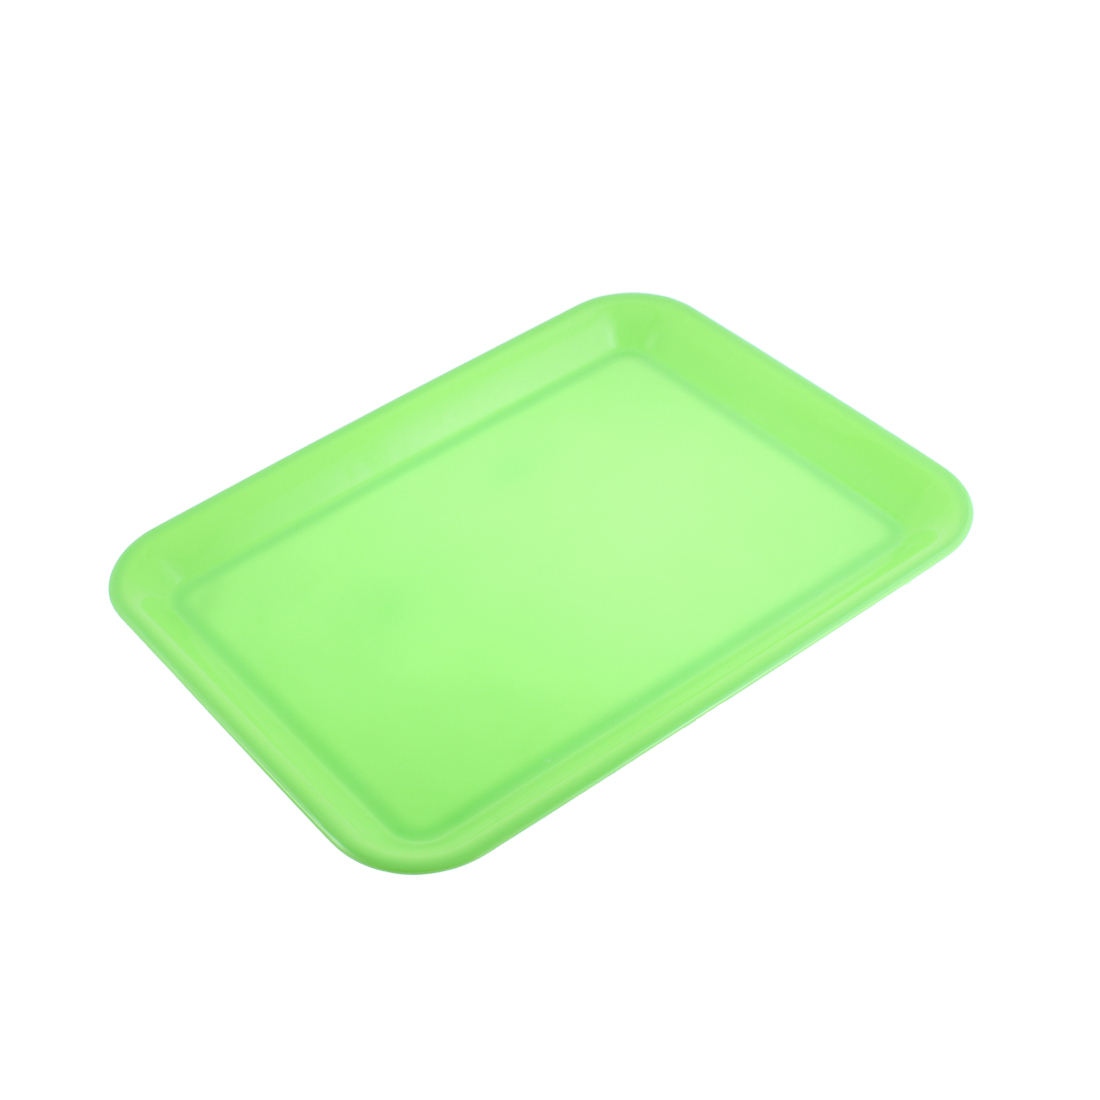 "Restaurant Plastic Rectangle Shape Food Dinner Serving Tray Green 15"" Length"